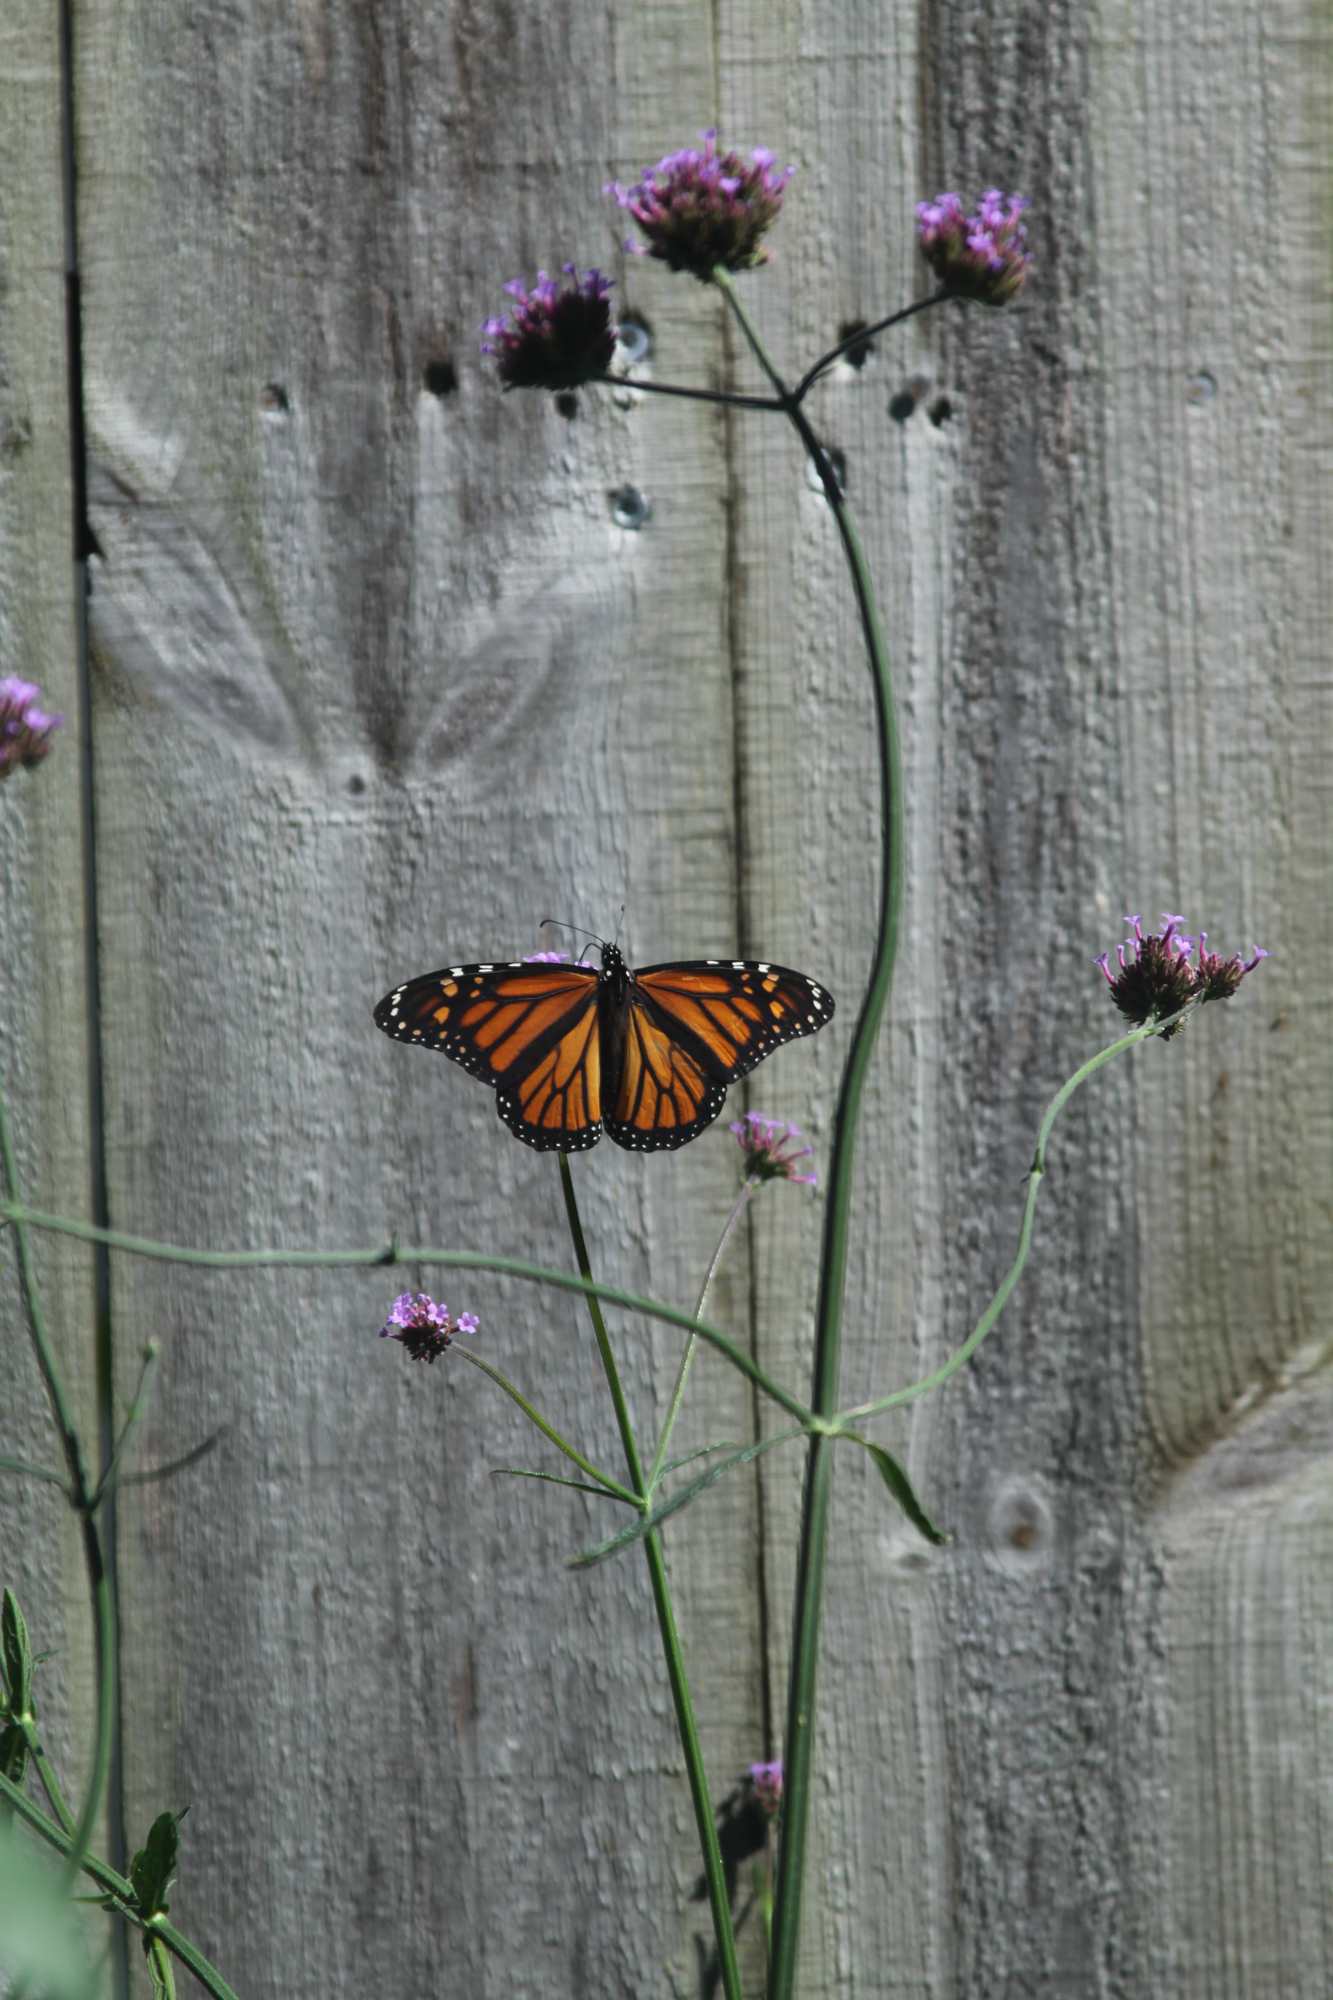 I will miss the butterflies when they leave for the season